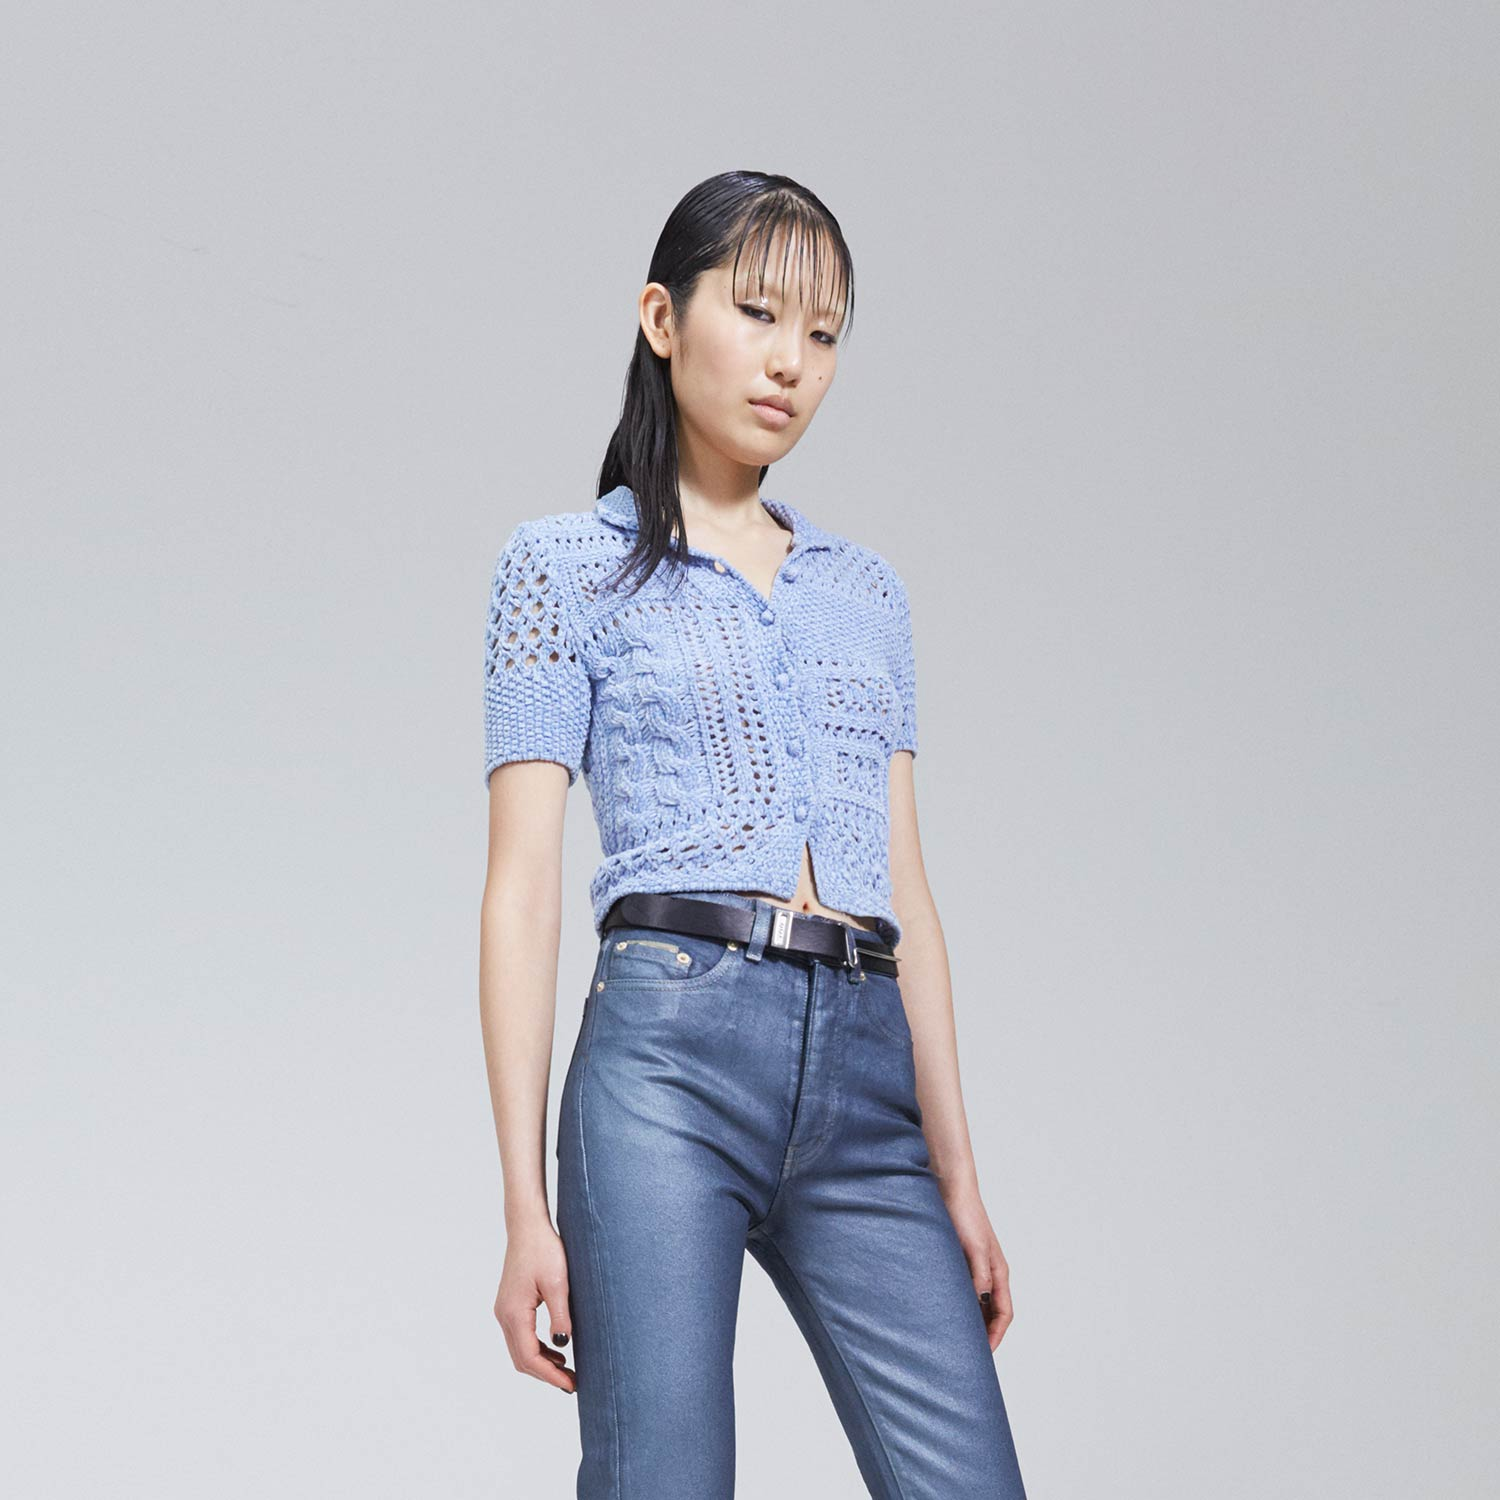 Juli Top by eytys, available on eytys.com for SEK1600 Hailey Baldwin Top Exact Product